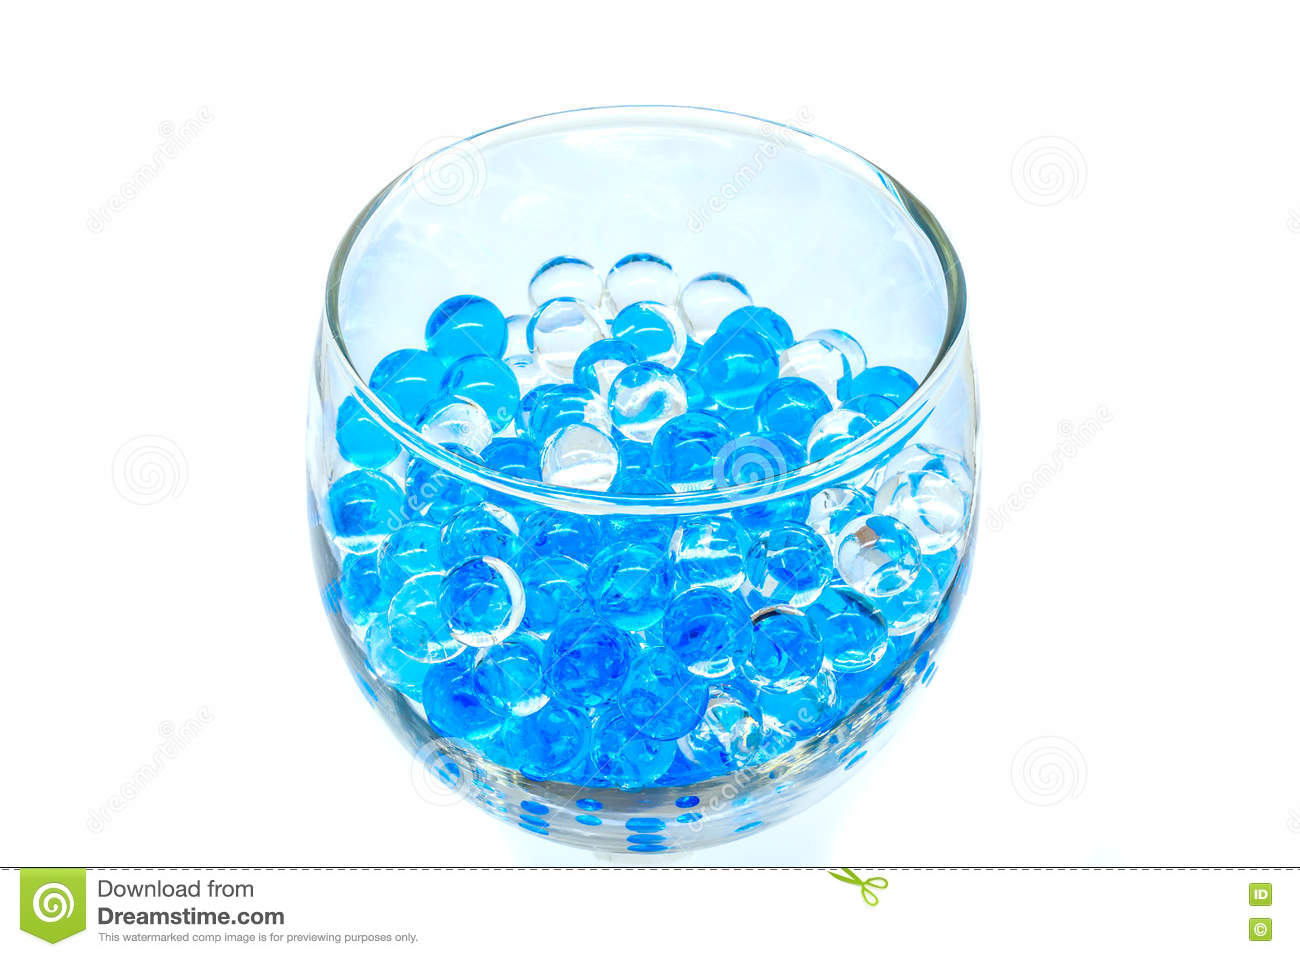 Polymer Gel. Gel Balls. Balls Of Blue And Transparent Hydrogel.